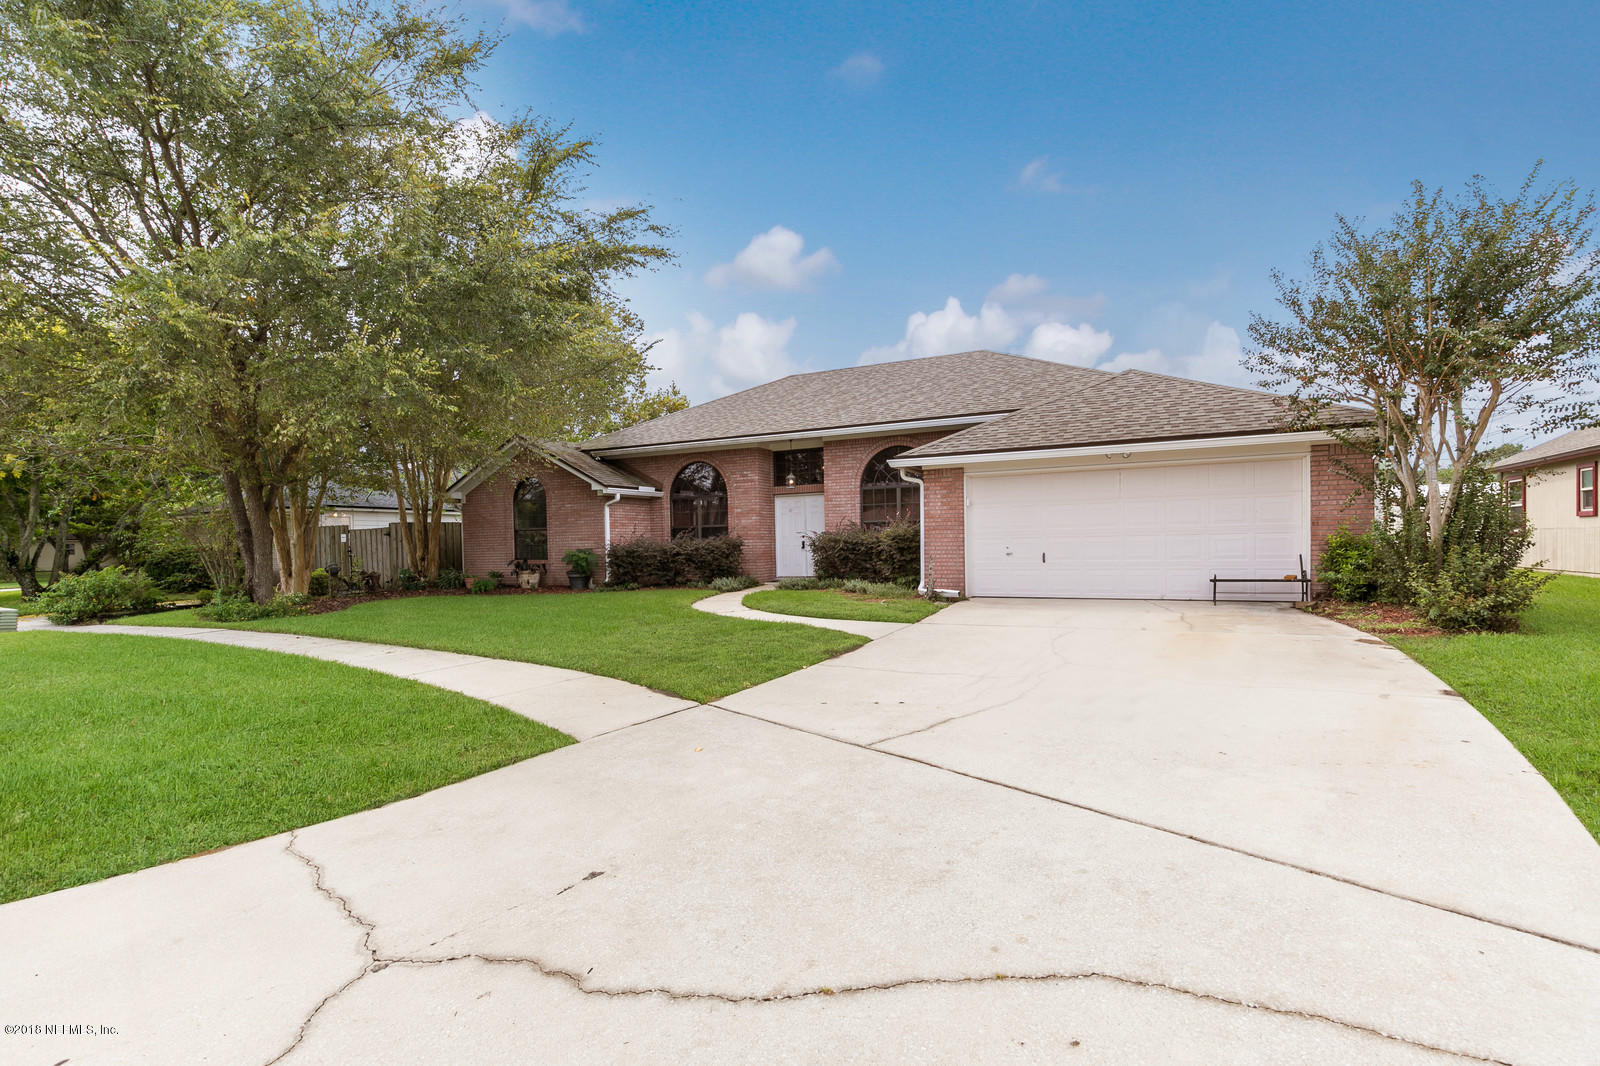 3392 ASPEN FOREST, MIDDLEBURG, FLORIDA 32068, 4 Bedrooms Bedrooms, ,3 BathroomsBathrooms,Residential - single family,For sale,ASPEN FOREST,961922